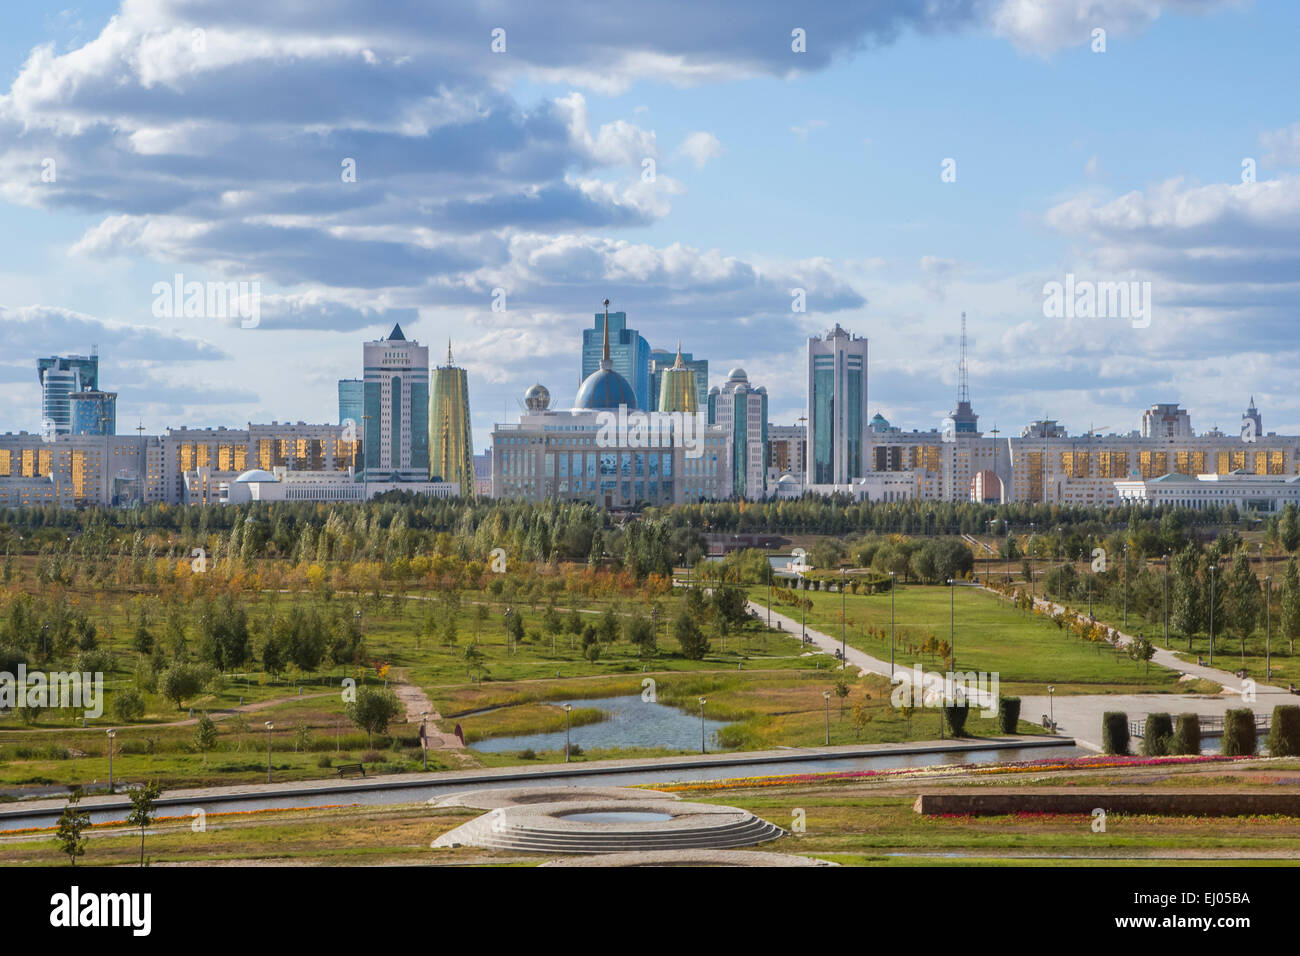 Administrative City, Astana, City, Kazakhstan, Central Asia, New, Palace, Summer, architecture, colourful, no people, - Stock Image